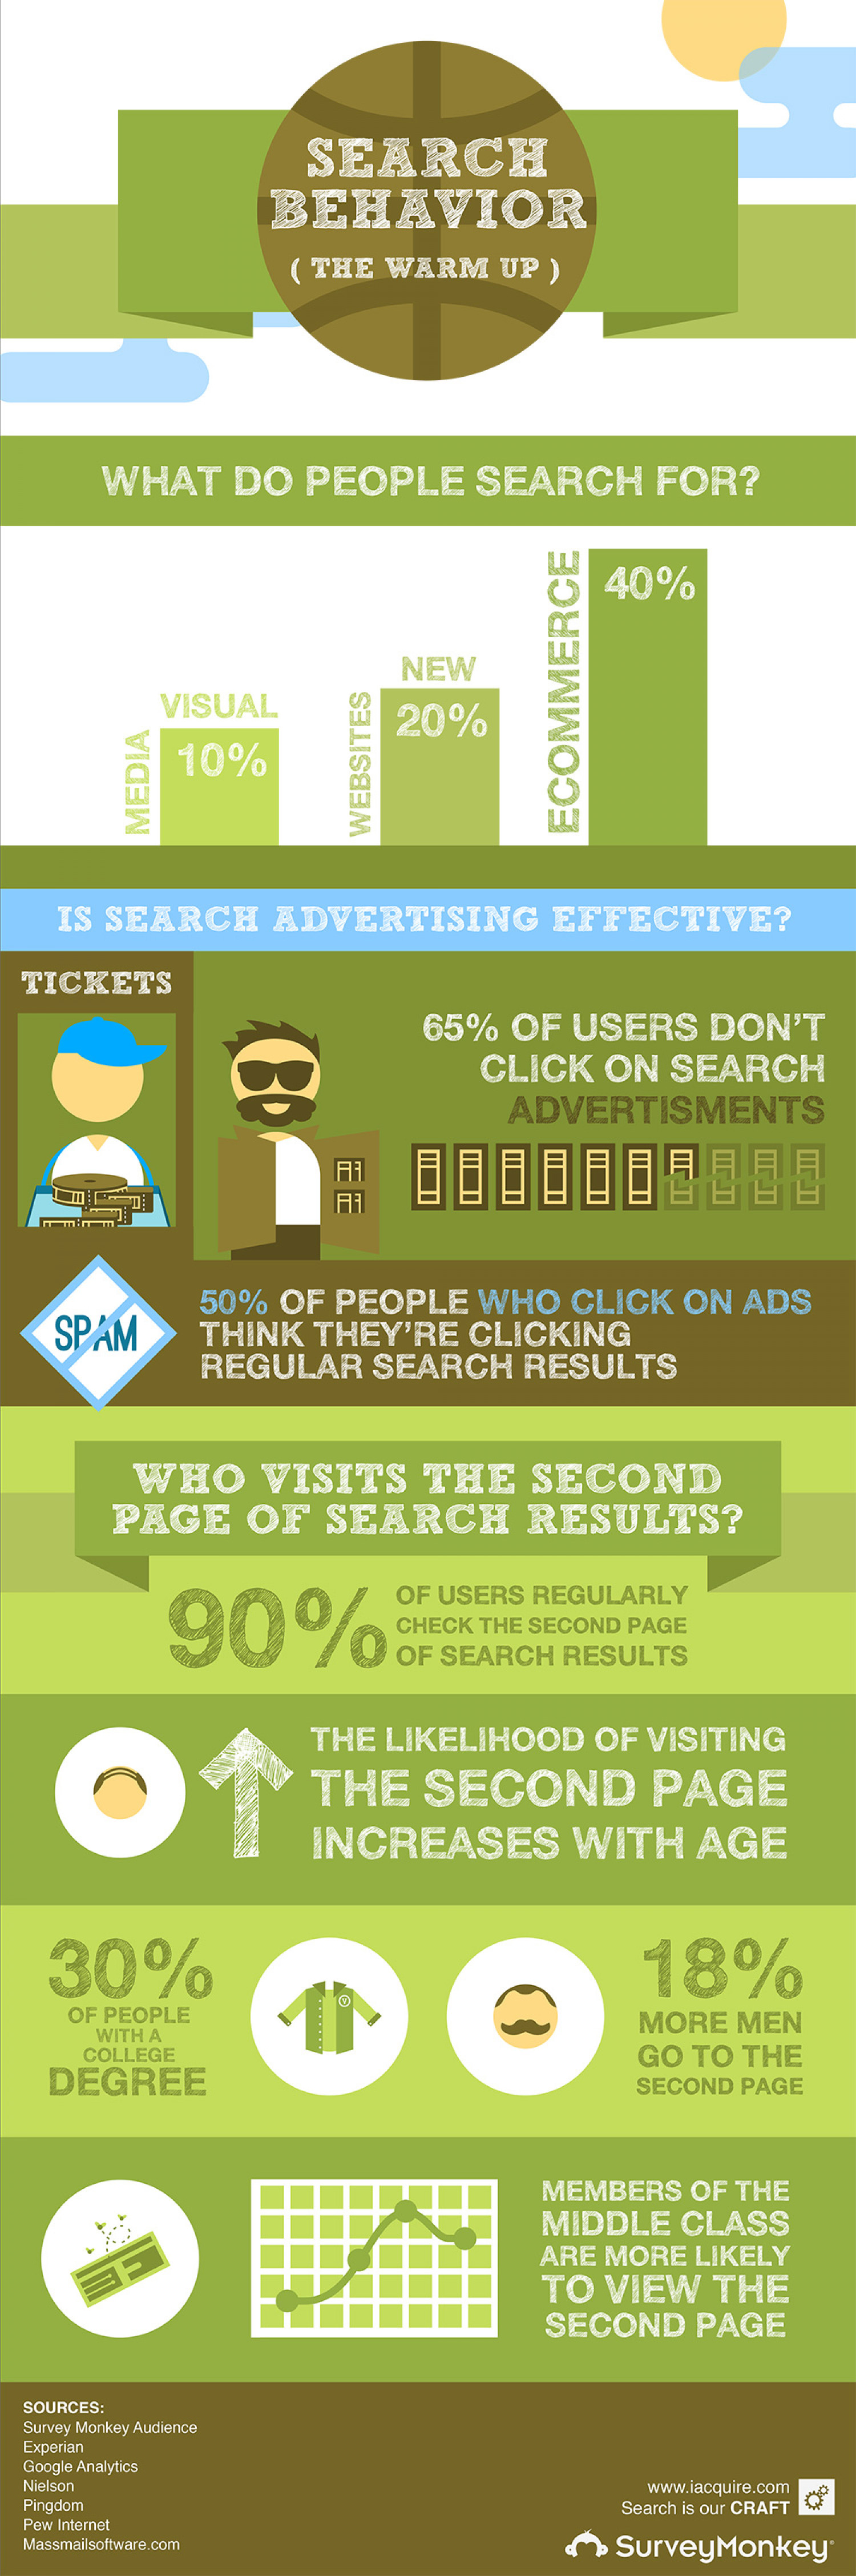 Search Behavior: The Warm Up Infographic